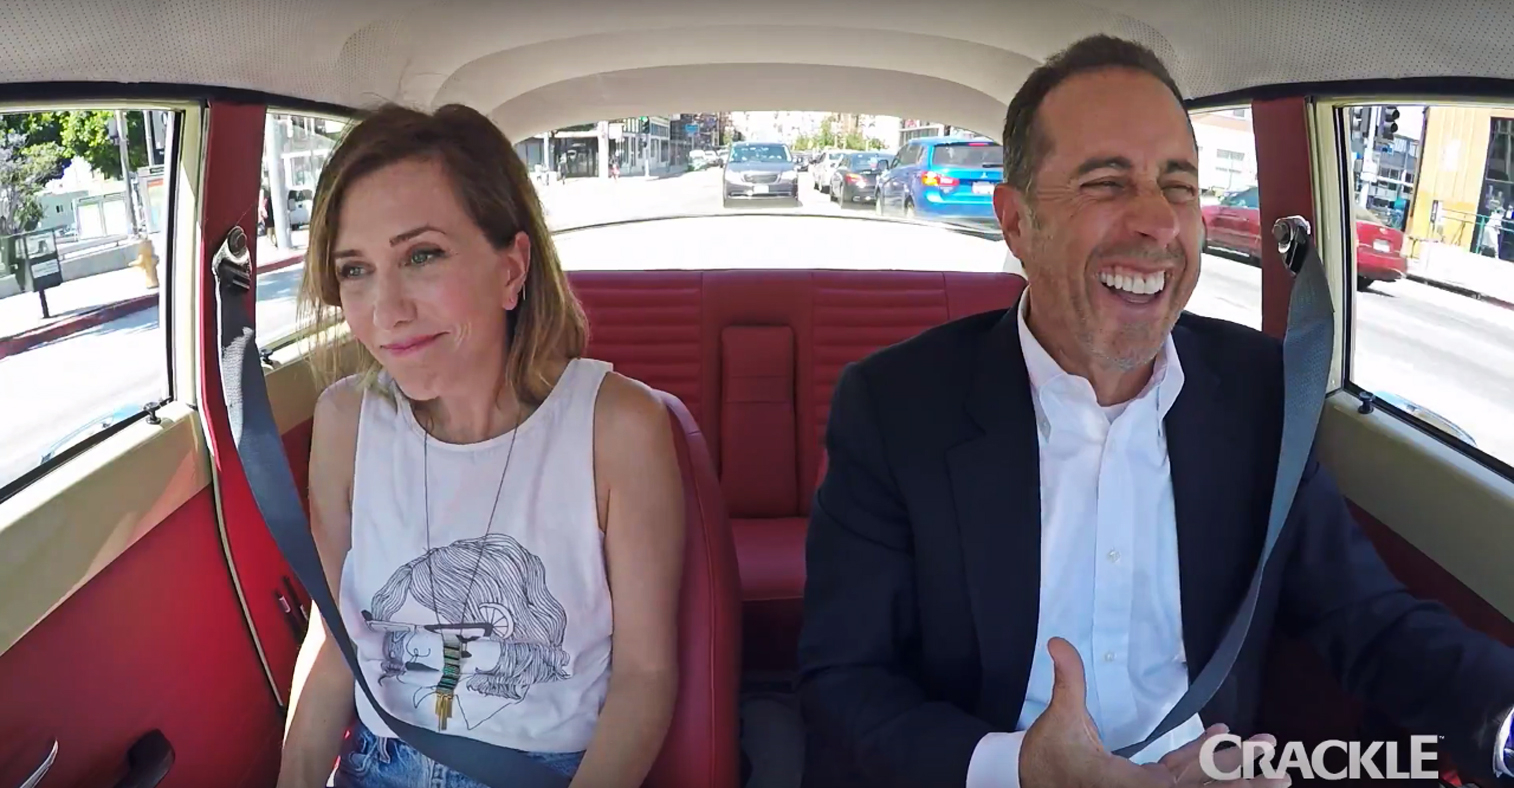 Commedians In Cars: Watch Kristen Wiig Cruise With Jerry Seinfeld In